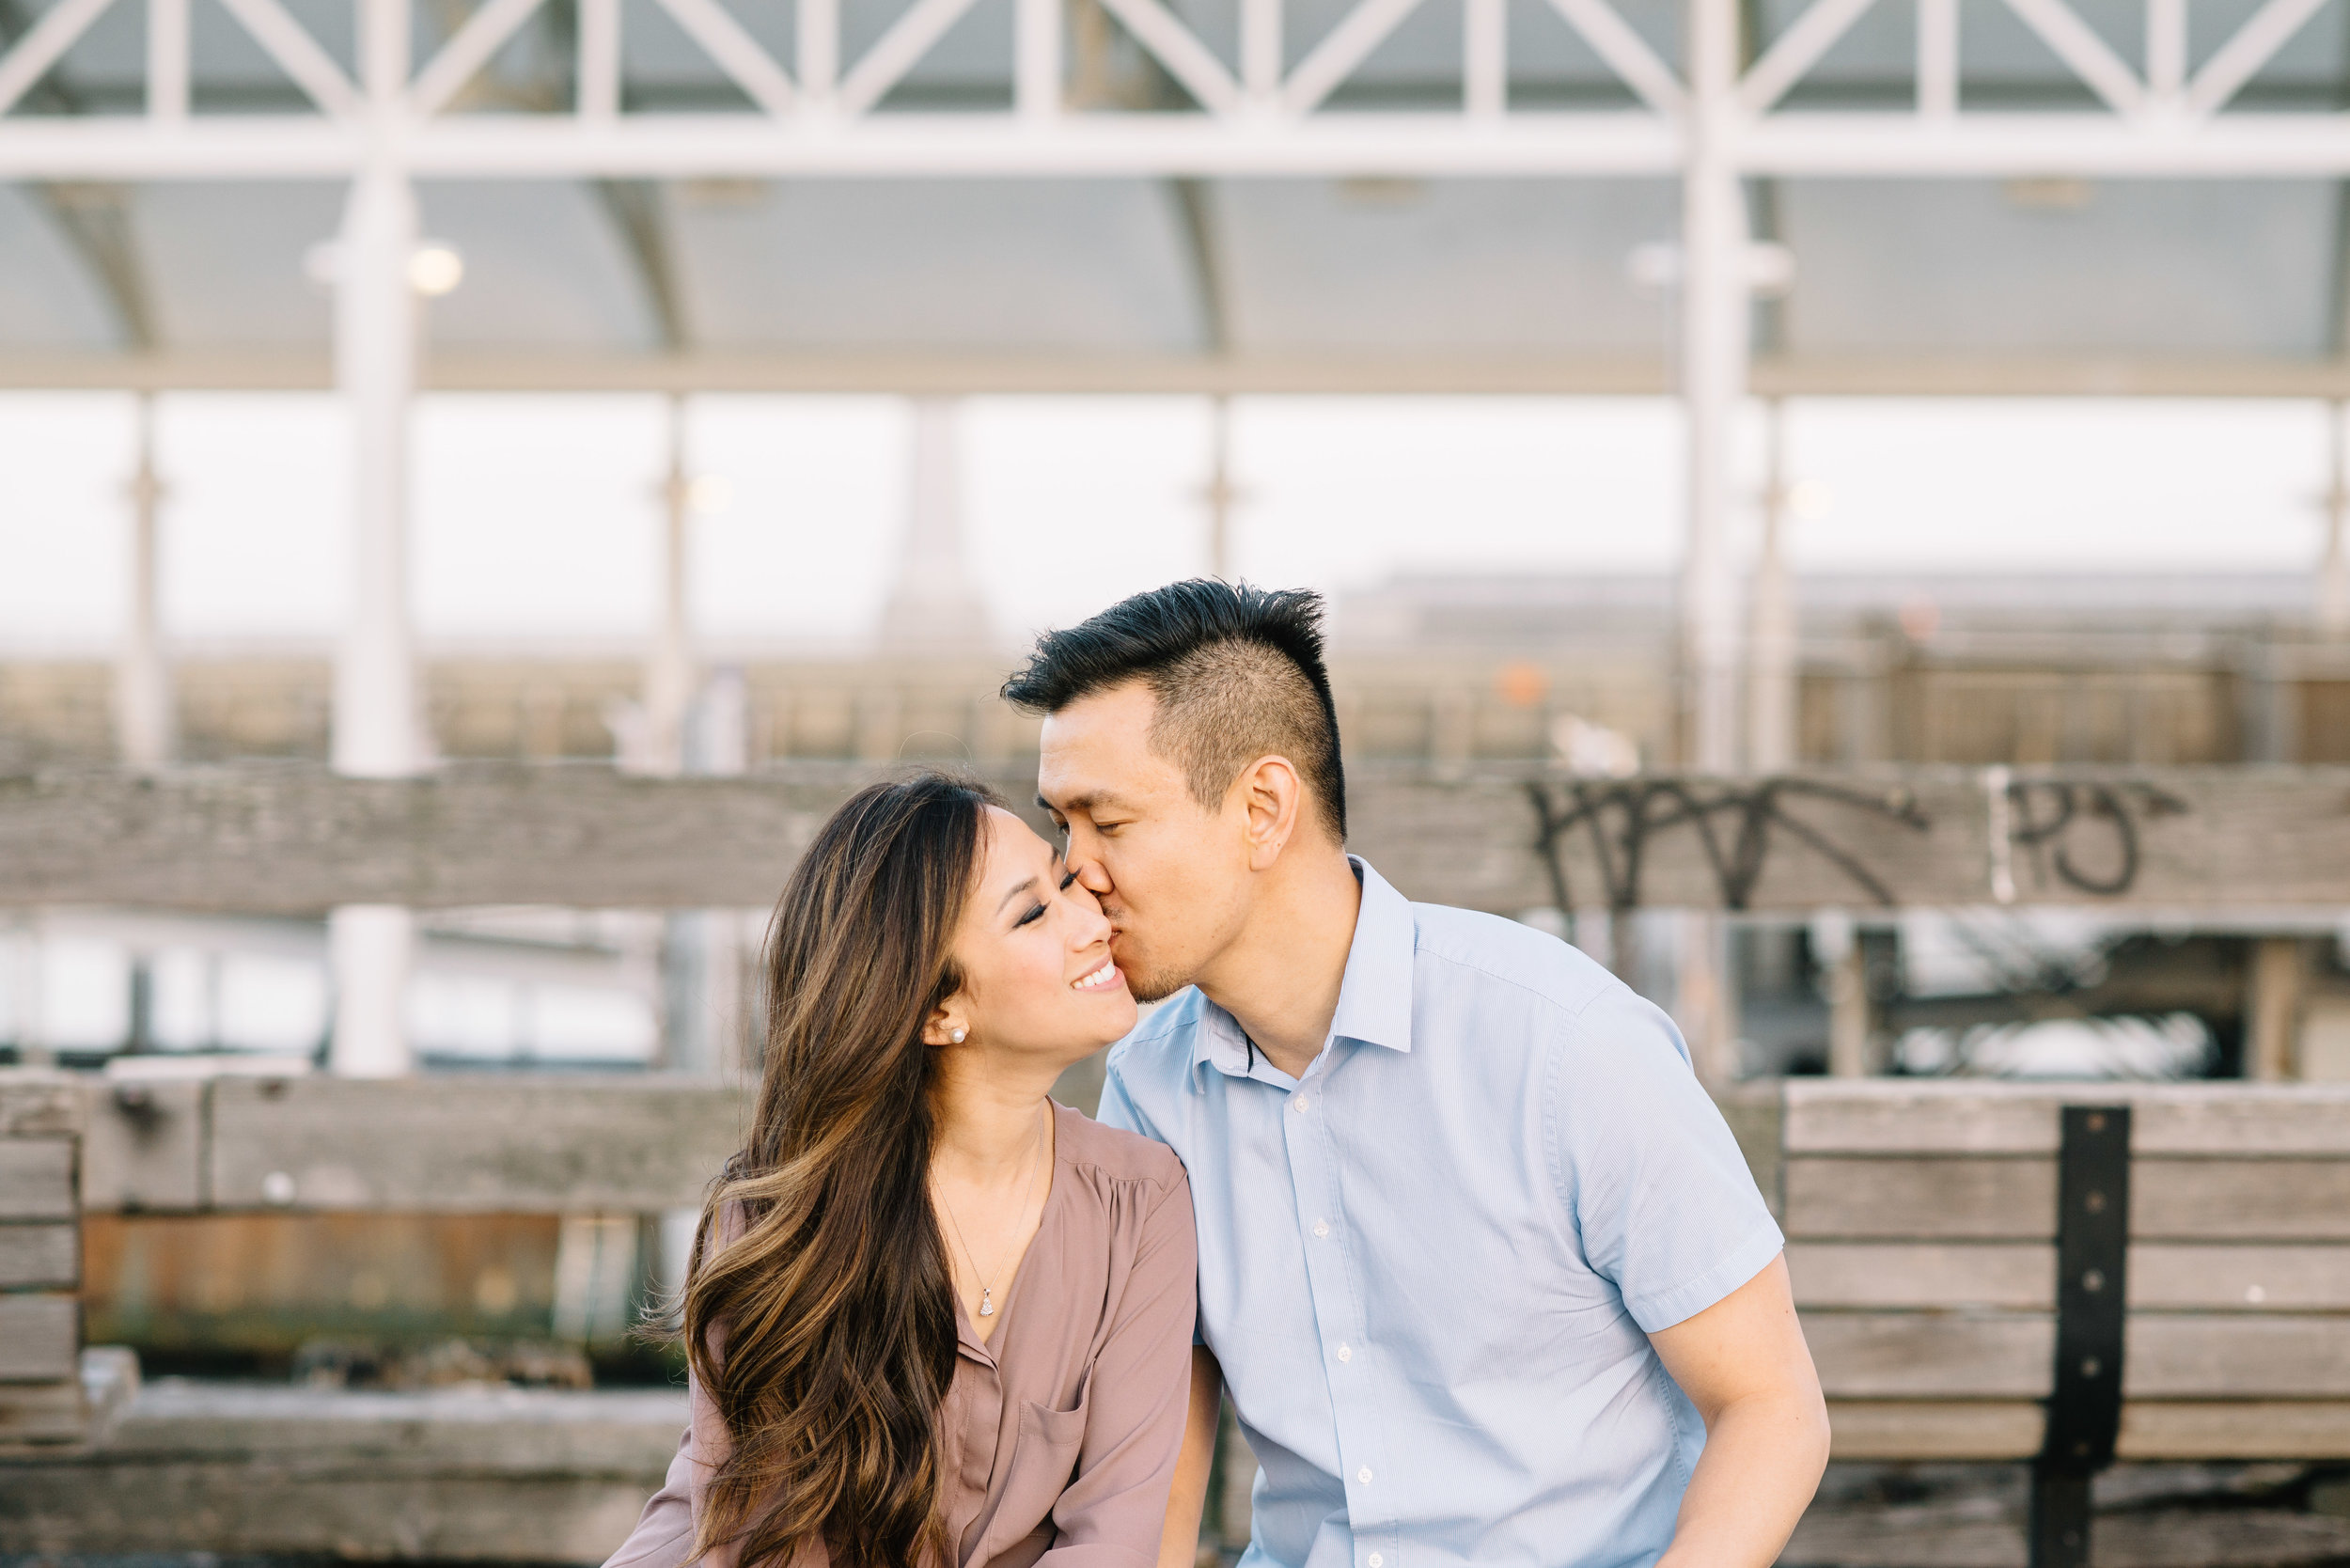 jennifer-jayn-photography-san-francisco-engagement-session-11.jpg